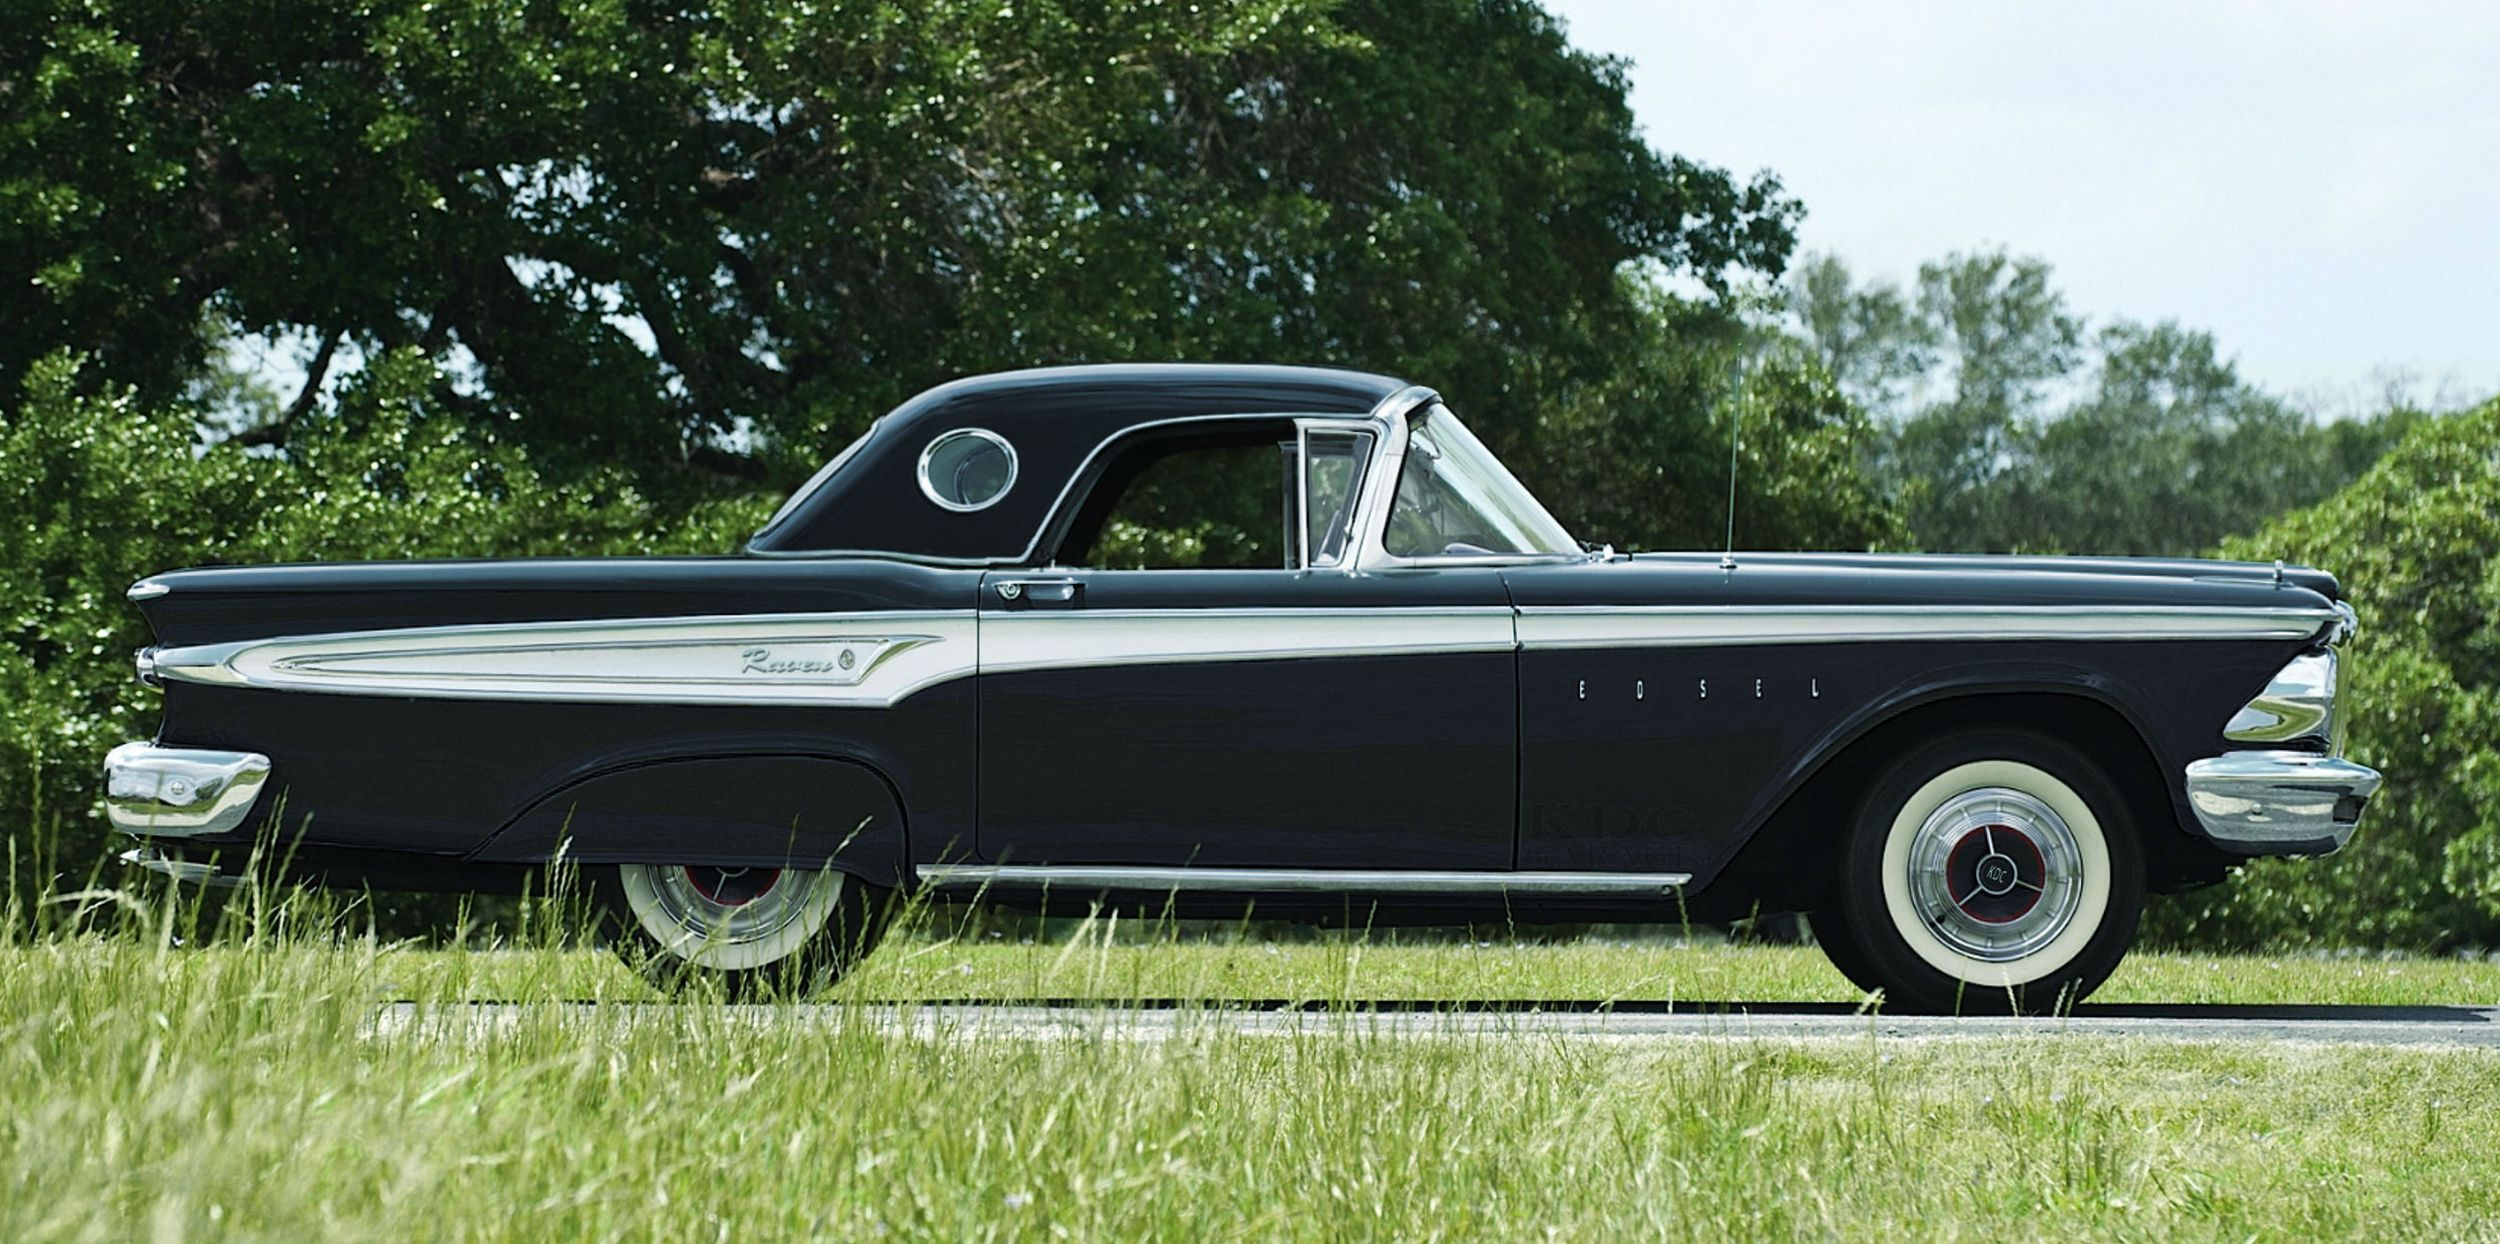 What if Edsel had its own version of the Thunderbir Hemmings Daily 2500x1244